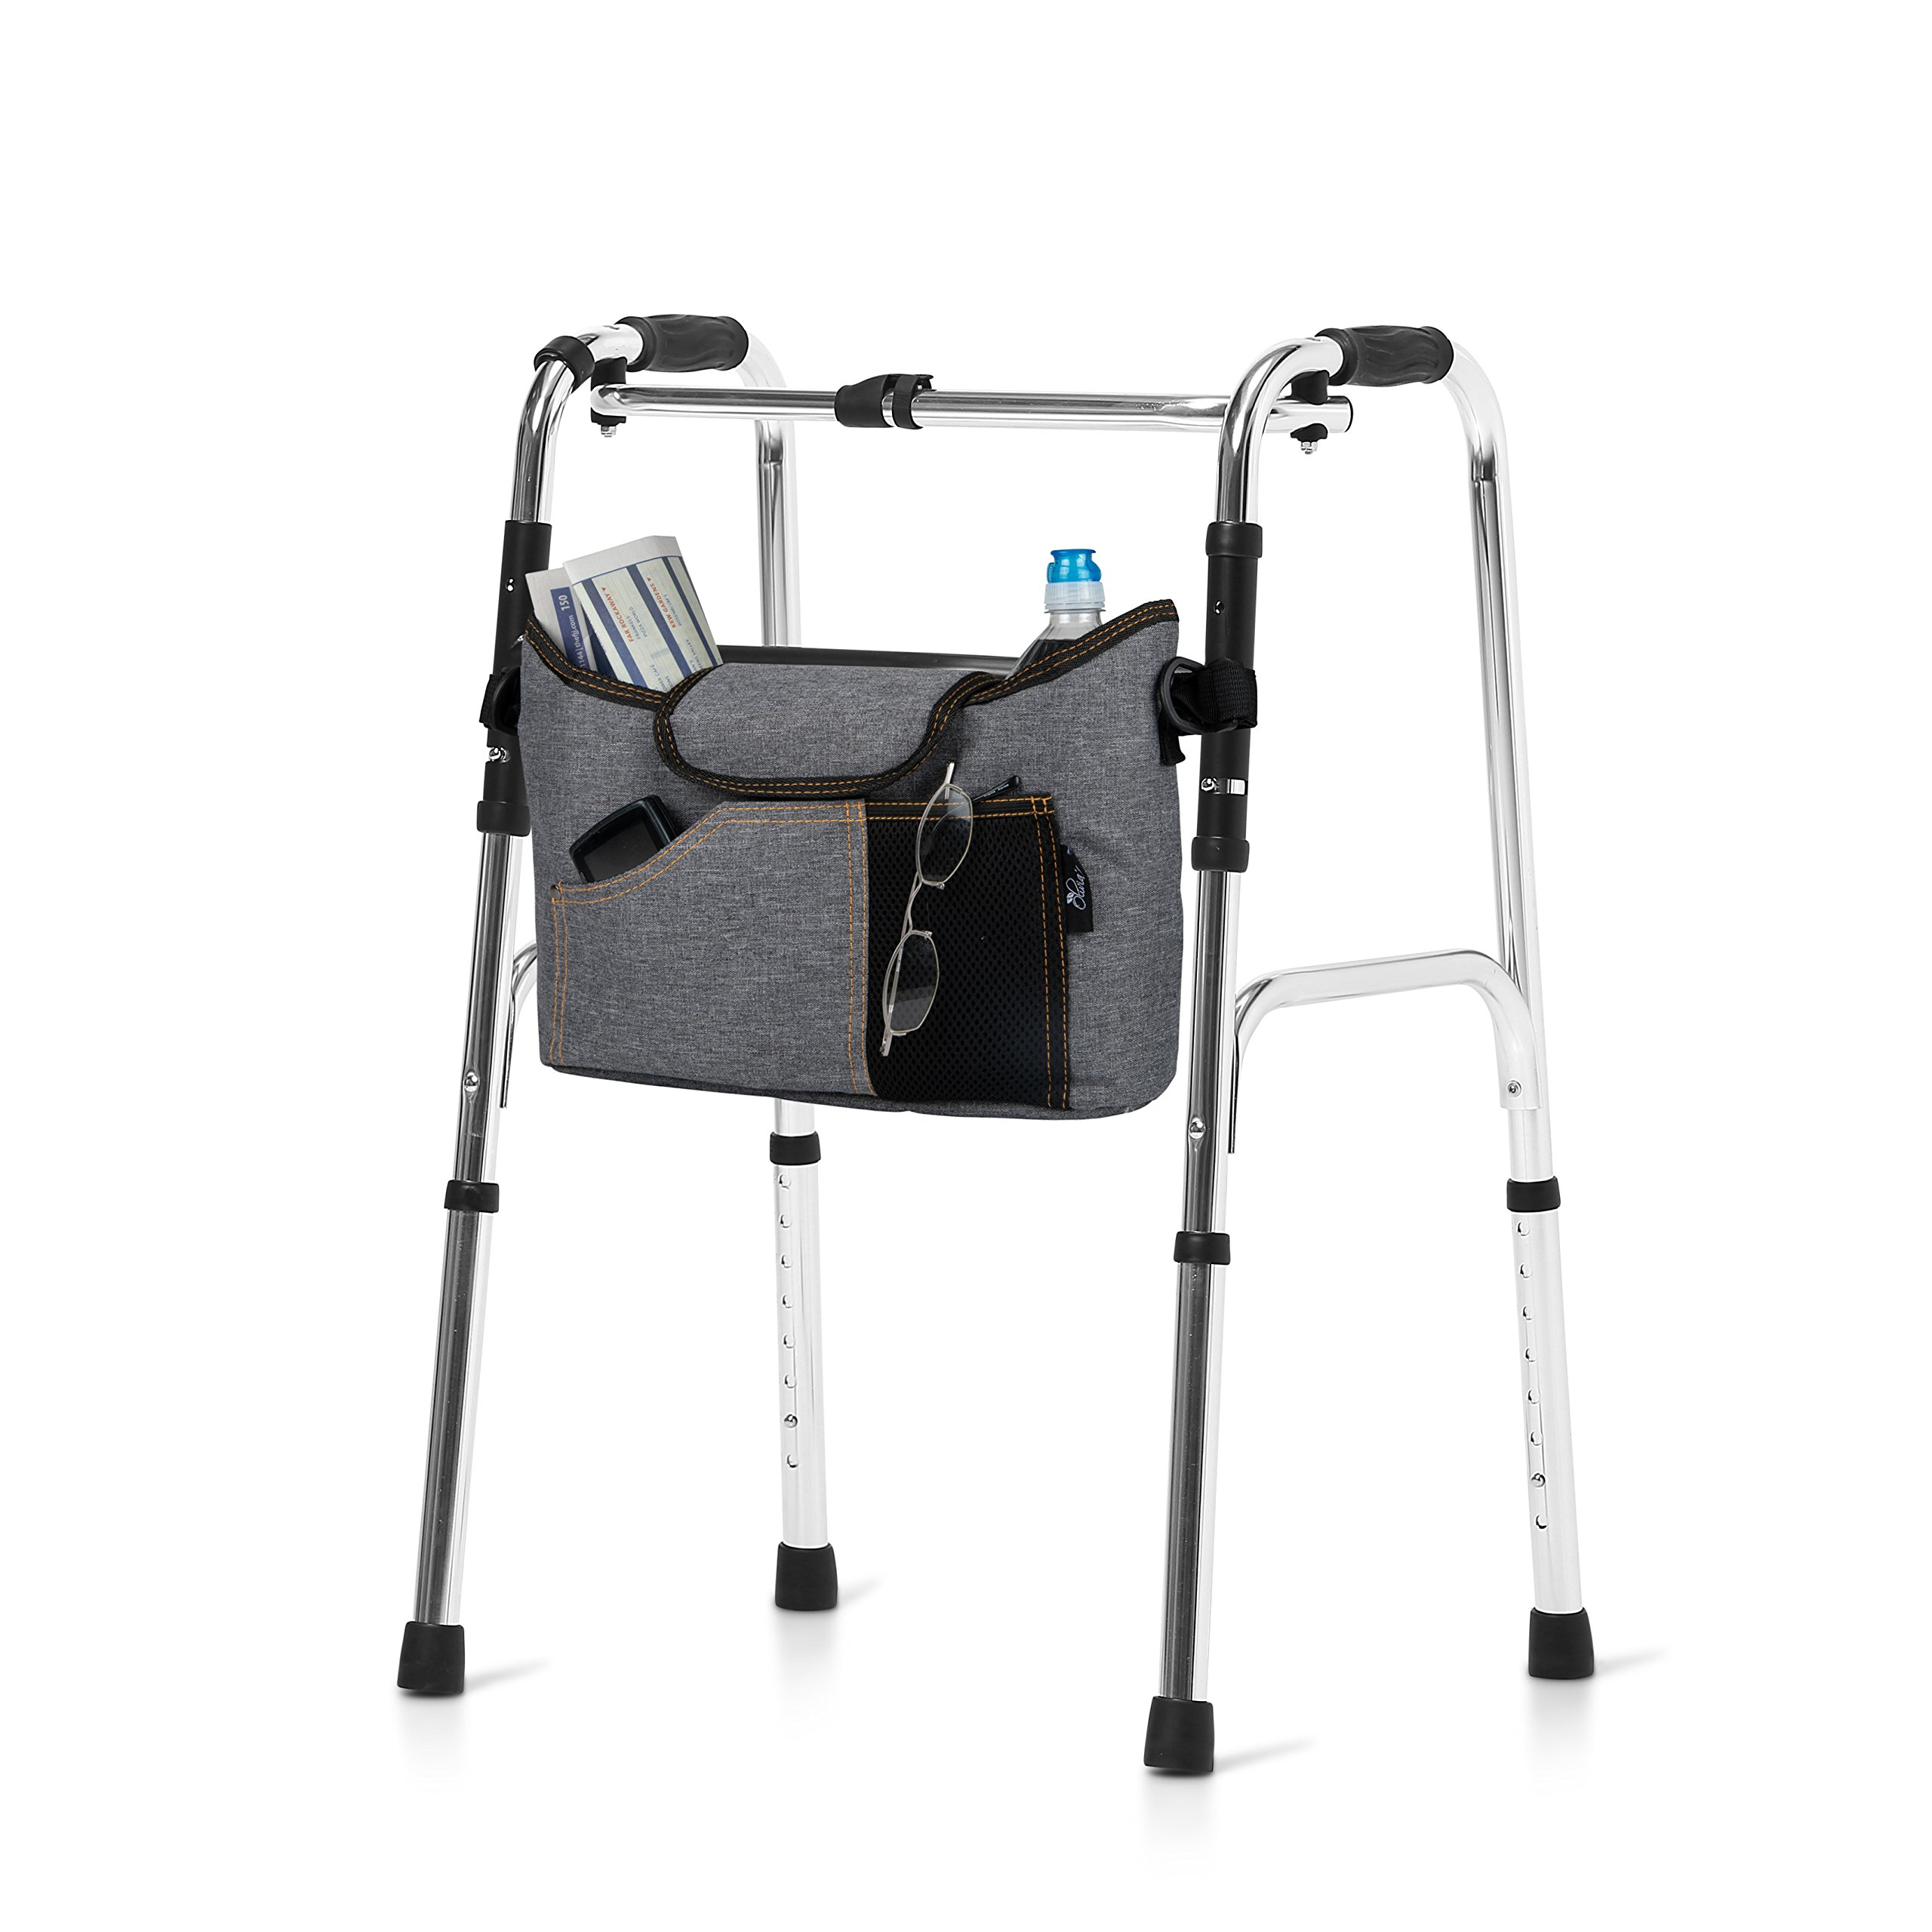 Olivia & Aiden Walker Bag - Wheelchair Pouch for Standard Walkers, Wheelchairs, Bariatric Walkers, and Dual-Point Folding Walkers - Keeps Your Necessities, Accessible and Organized by OLIVIA & AIDEN